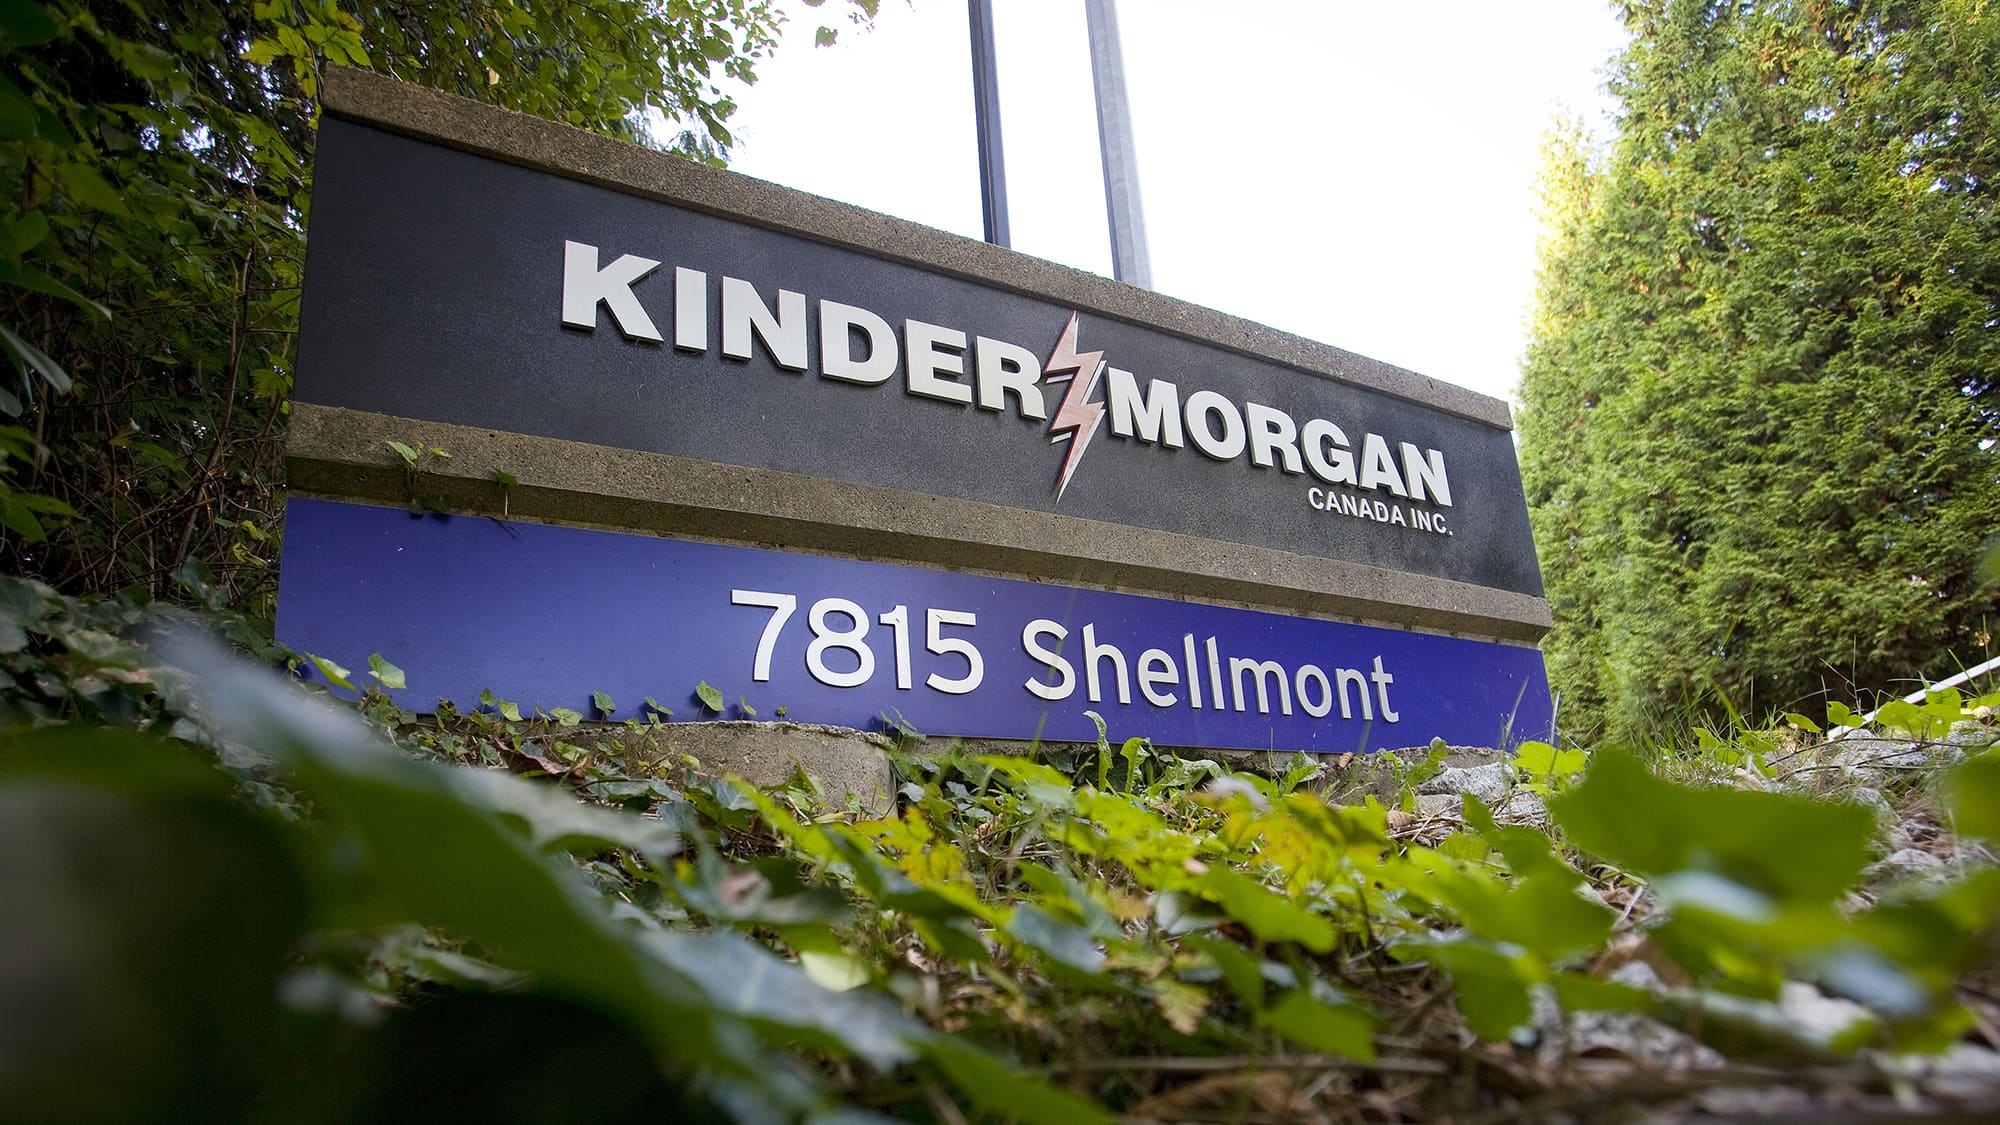 Kinder Morgan Stock Quote One Energy Stock That Is Not Oil Vulnerable